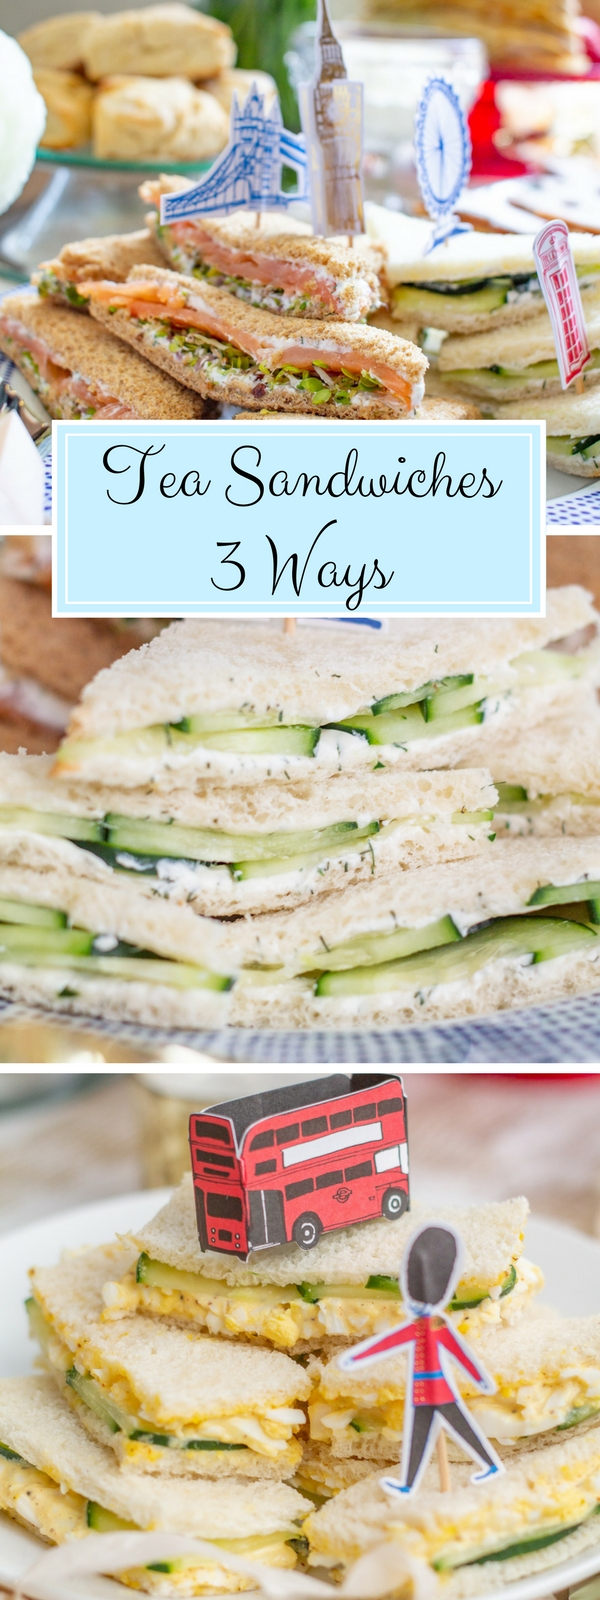 Three Tea Sandwich Recipes | Smoked Salmon Tea Sandwiches, Cucumber Tea Sandwiches, and Egg Salad Tea Sandwiches | Tea sandwiches are the perfect thing to serve at a Royal Wedding Viewing Party! #teasandwiches #royalwedding #babyshower #bridalshower #londonparty #afternoontea